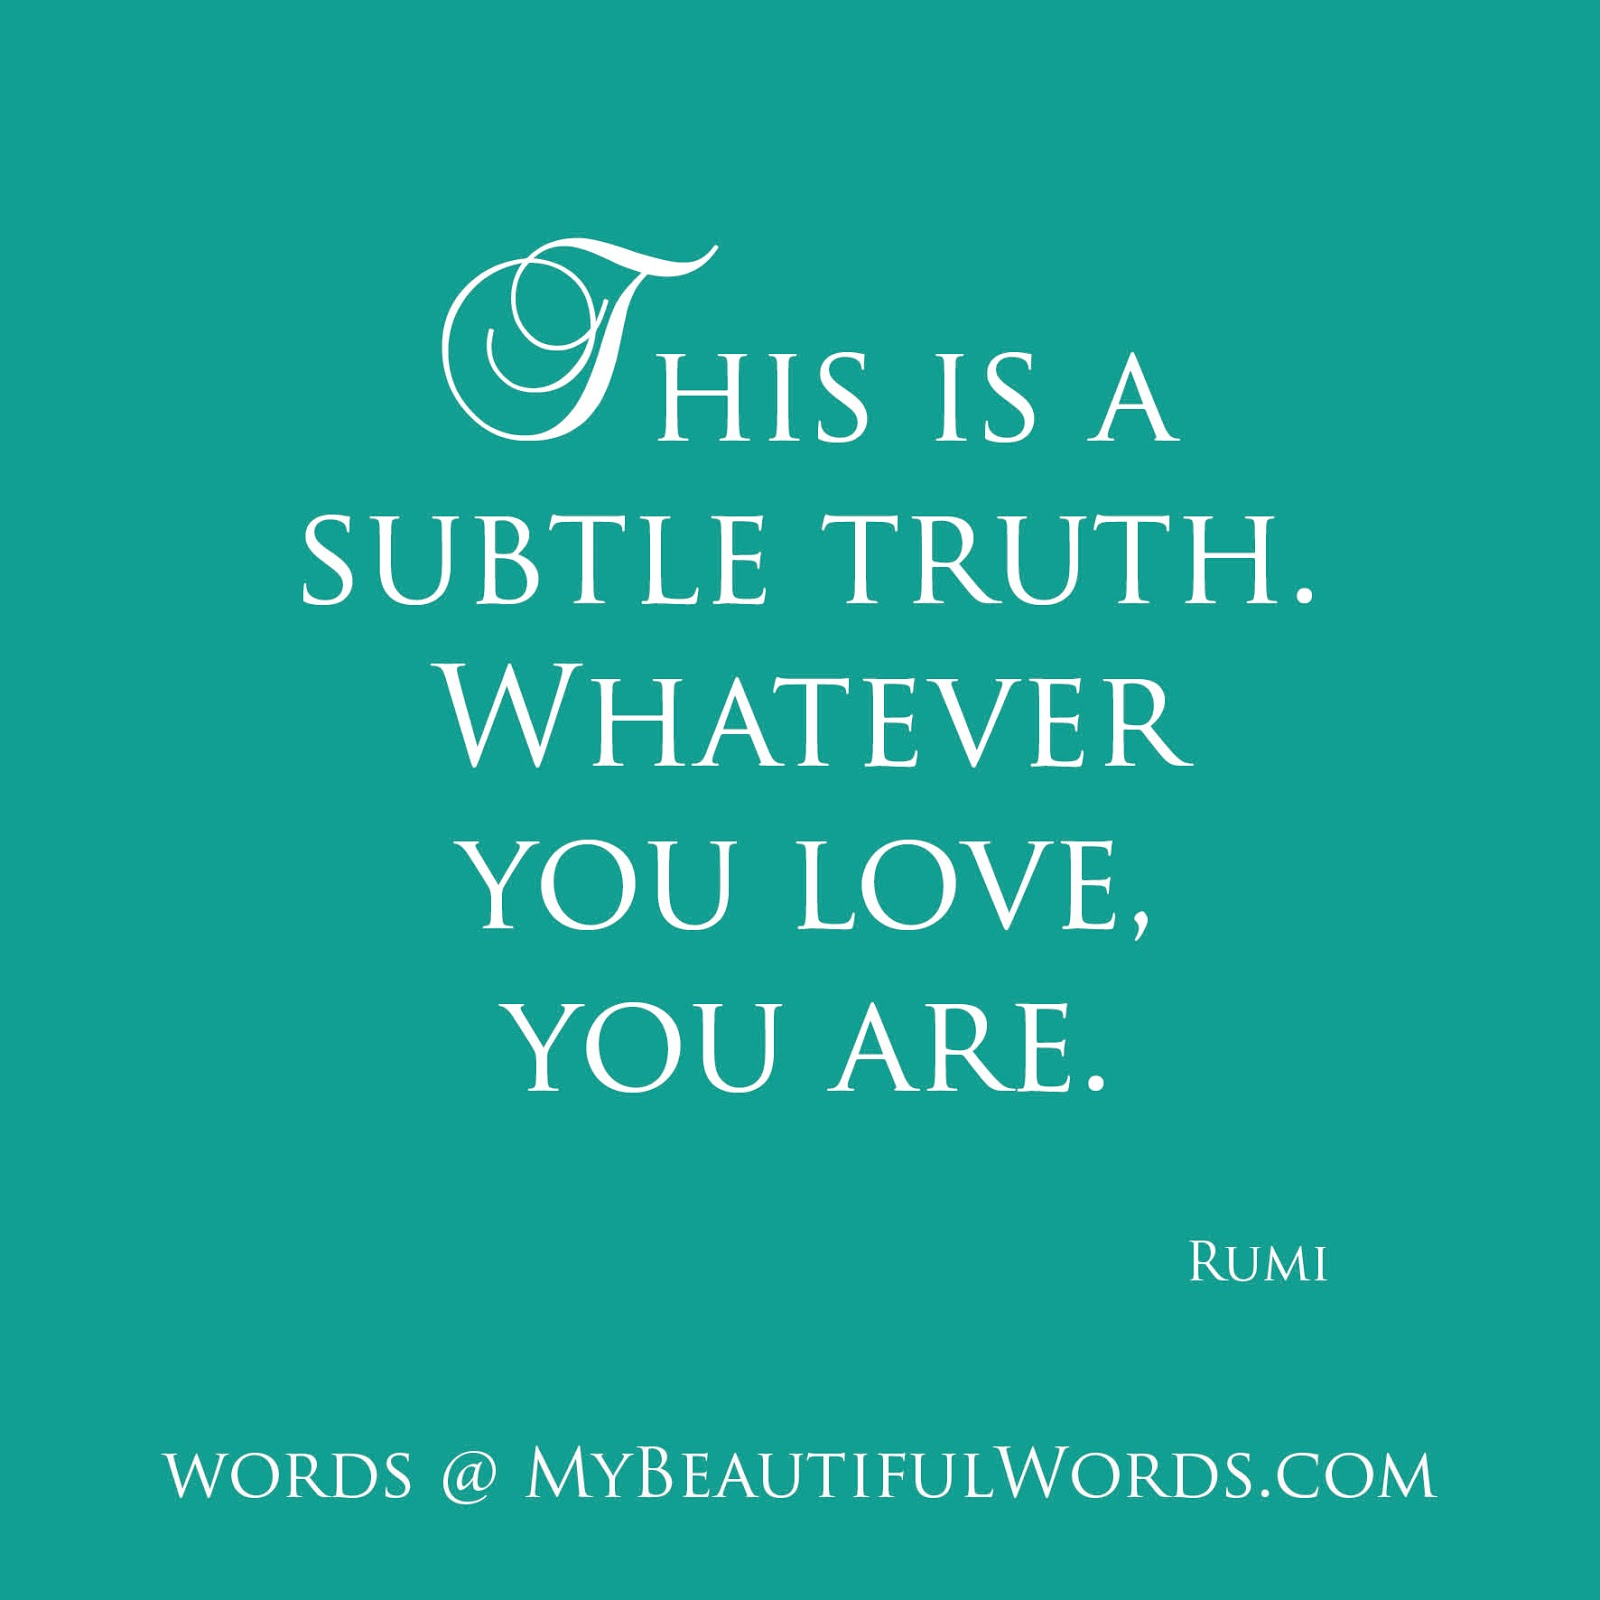 Quotes About Love: Rumi Quotes About Love. QuotesGram